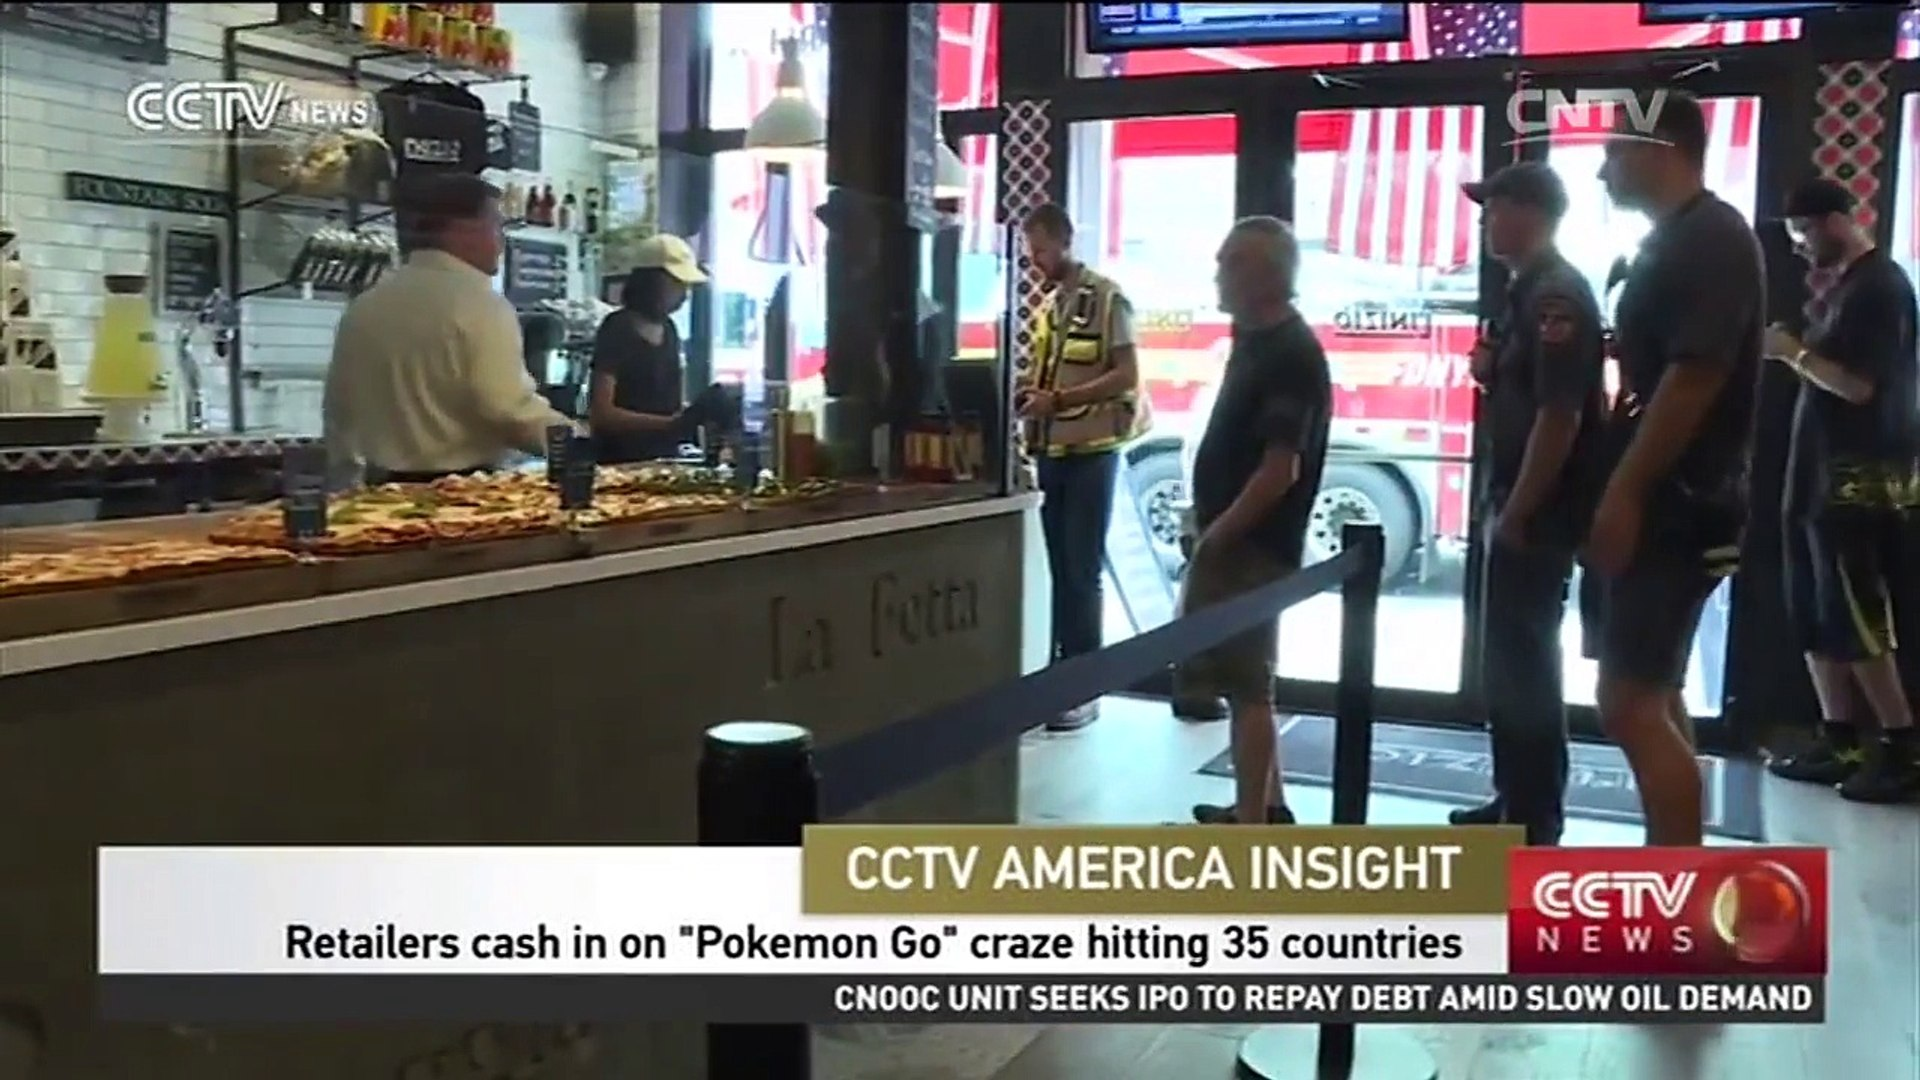 Retailers cash in on Pokemon Go craze hitting 35 countries Video